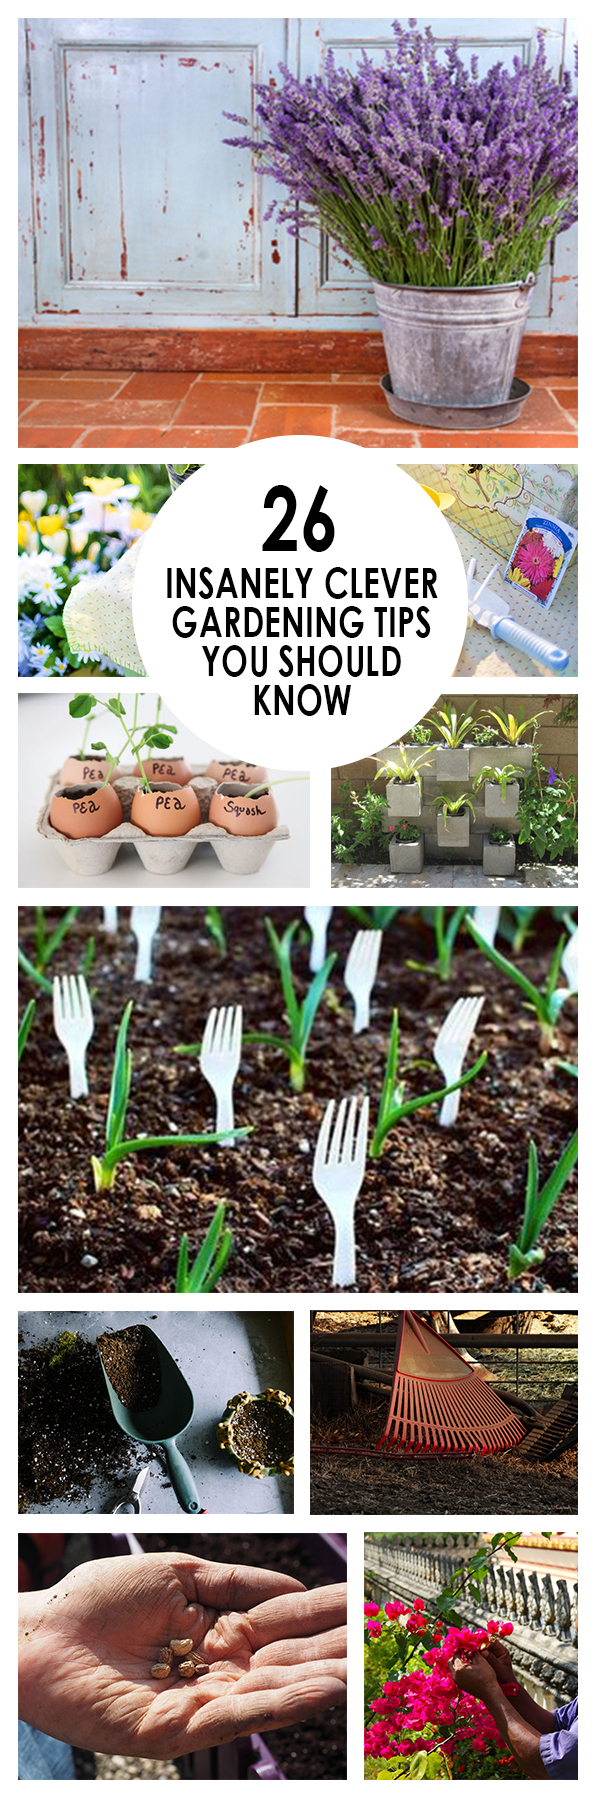 Gardening, home garden, garden hacks, garden tips and tricks, growing plants, plants, vegetable gardening, planting fruit, flower garden, outdoor living. #gardening #gardeningtip #outdoorliving #gardeners #gardeninghacks #mastergardenerhacks